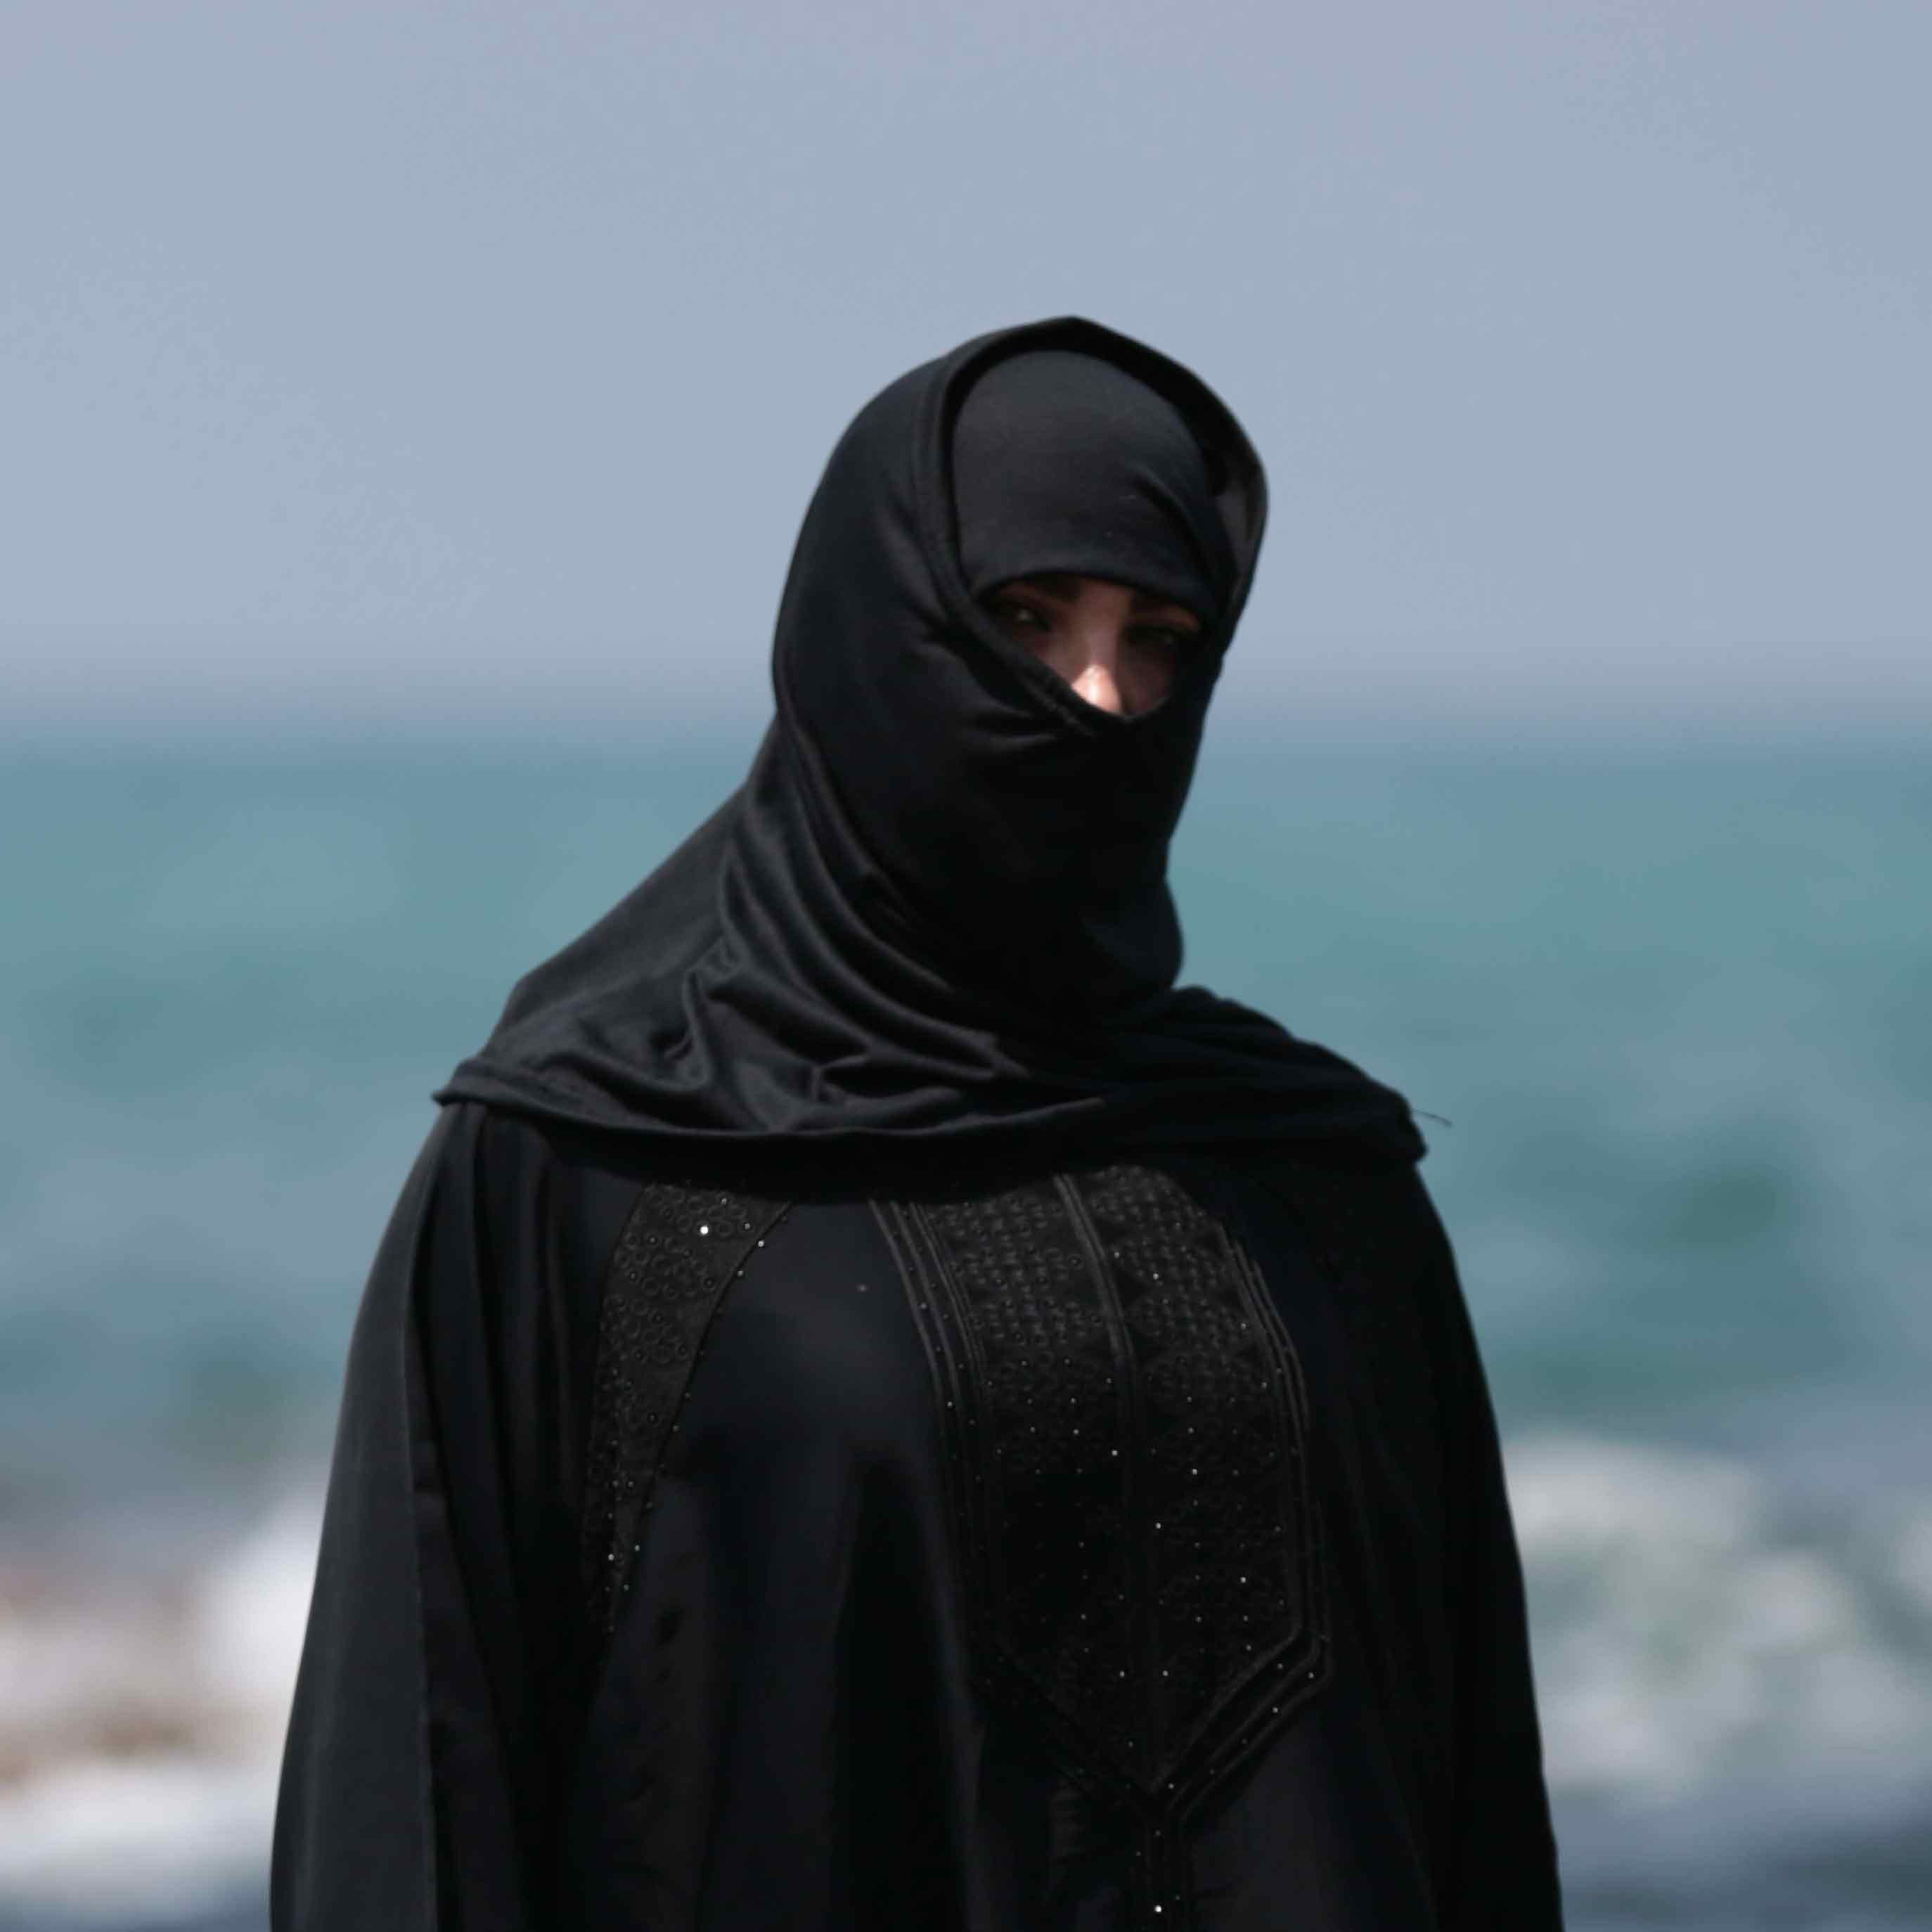 Women in the Arabian Peninsula are treated like property.